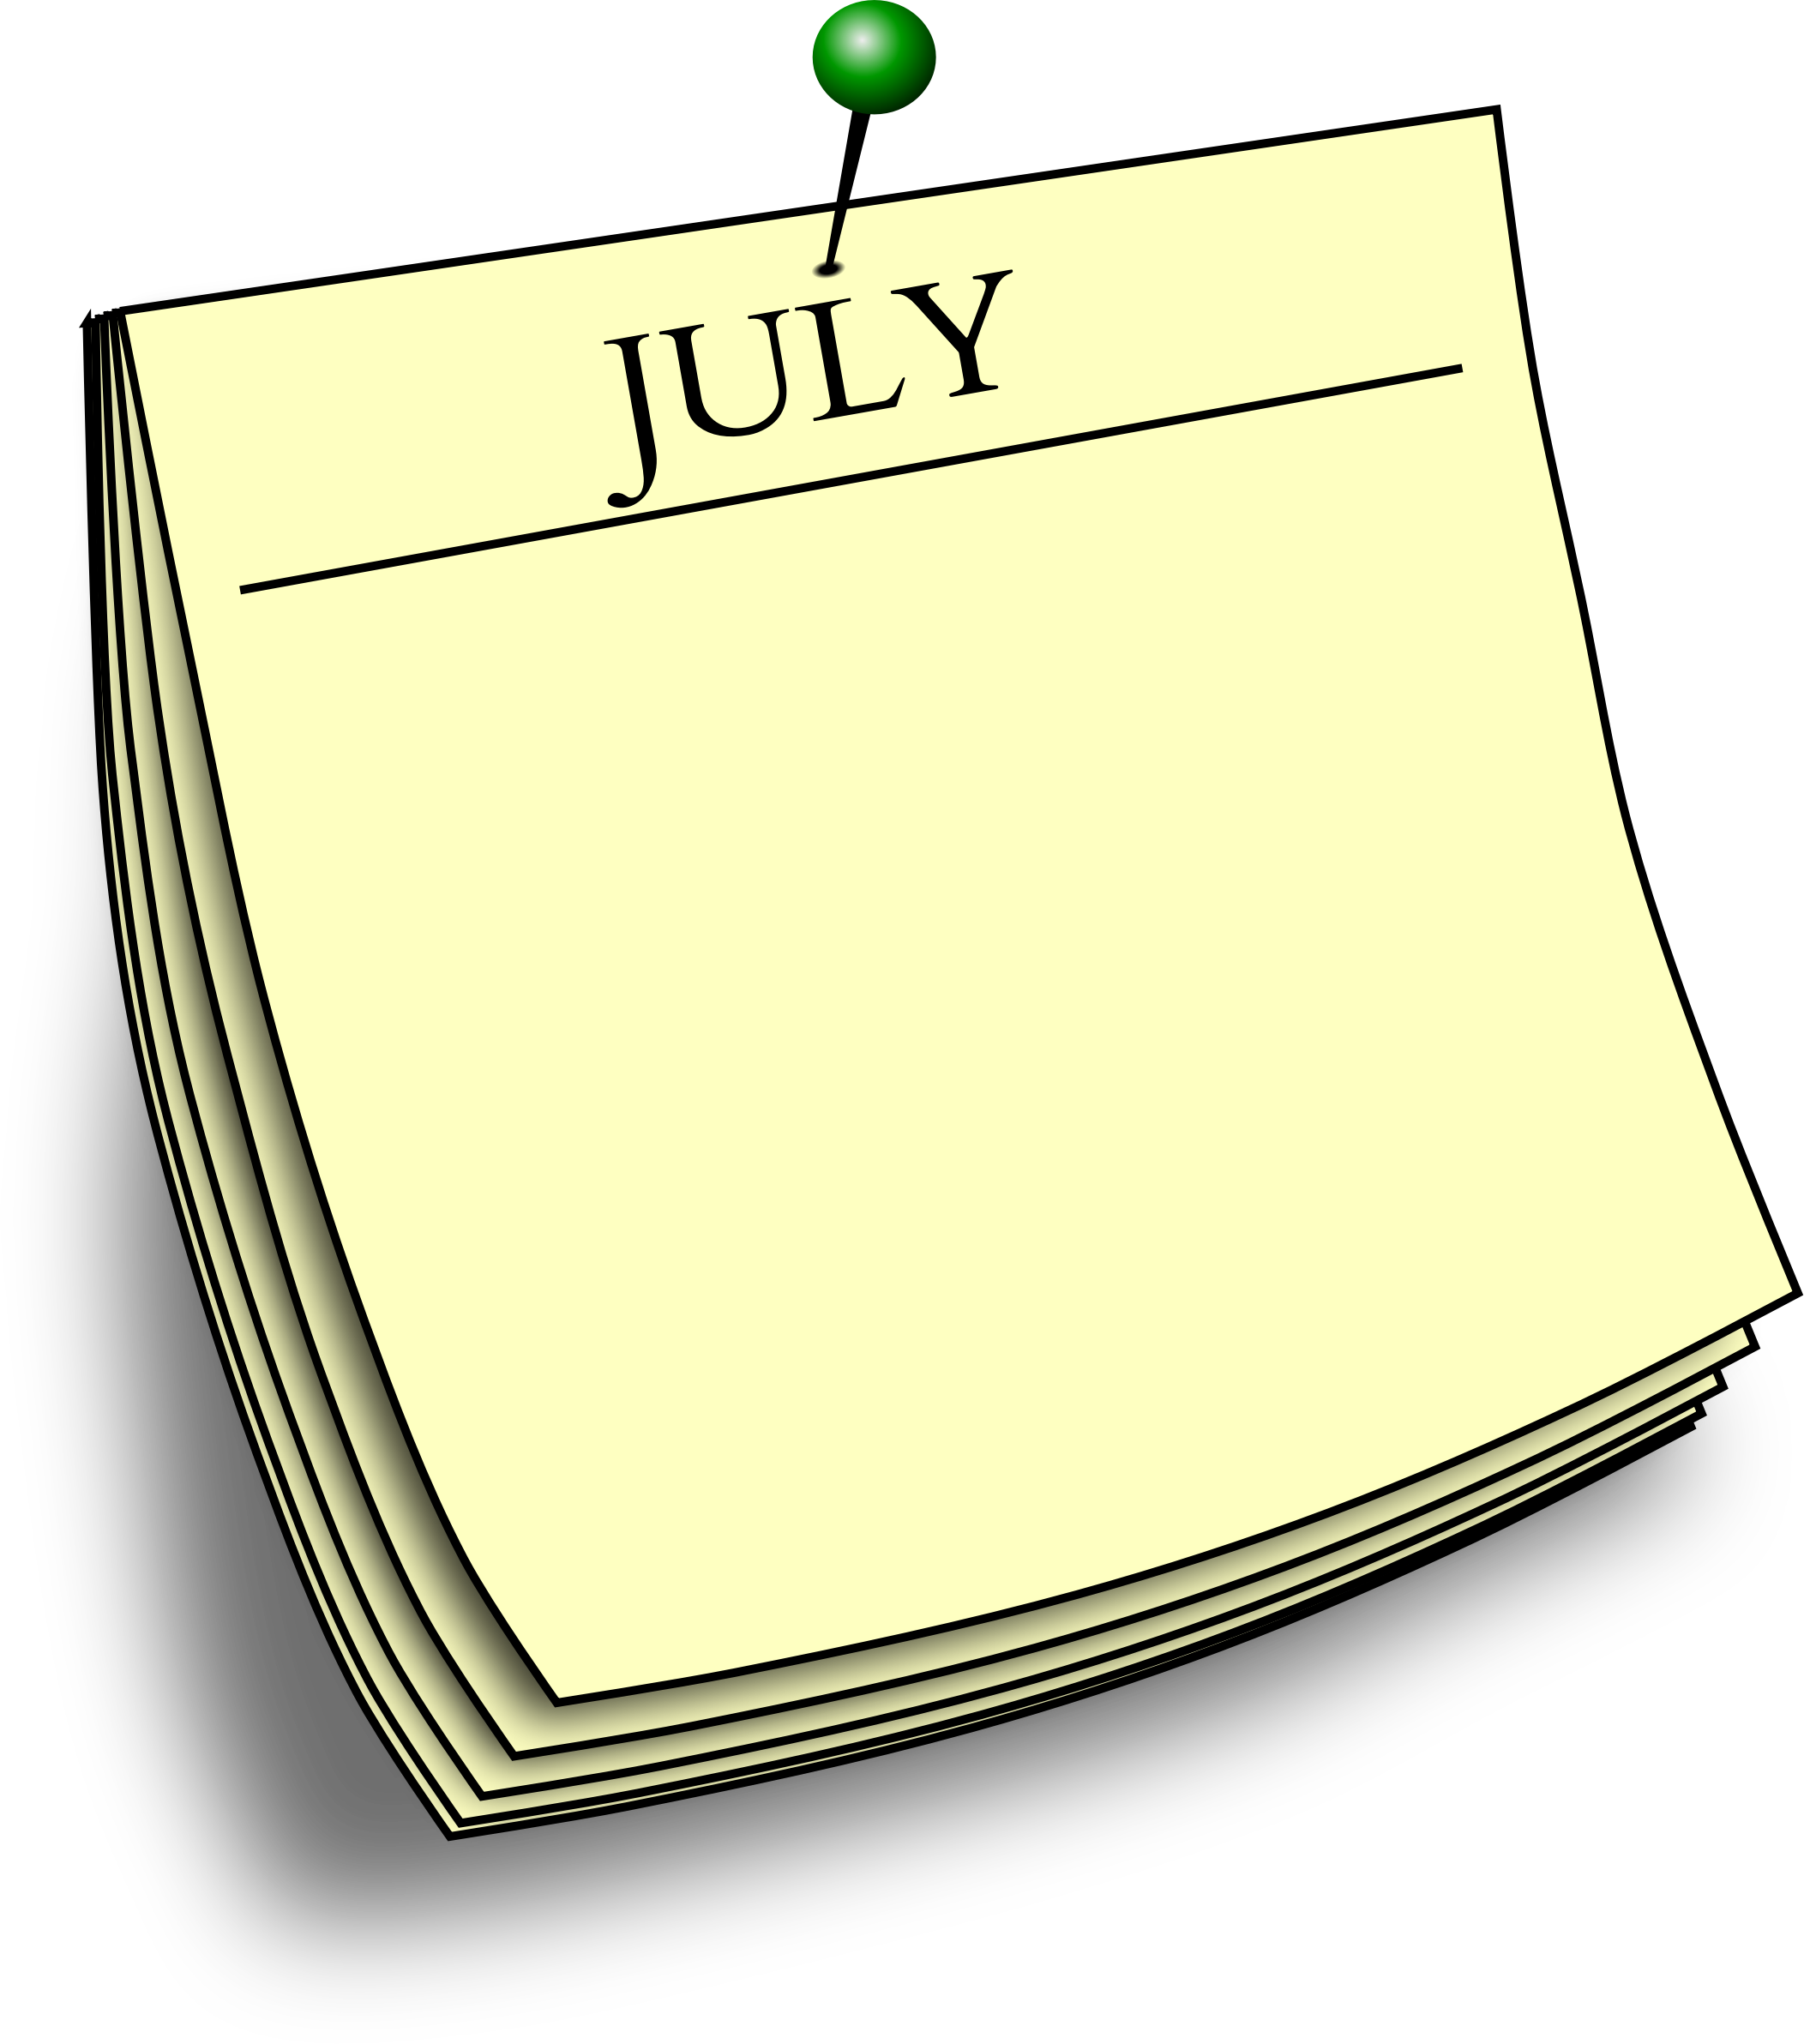 Monthly note - July by Firkin